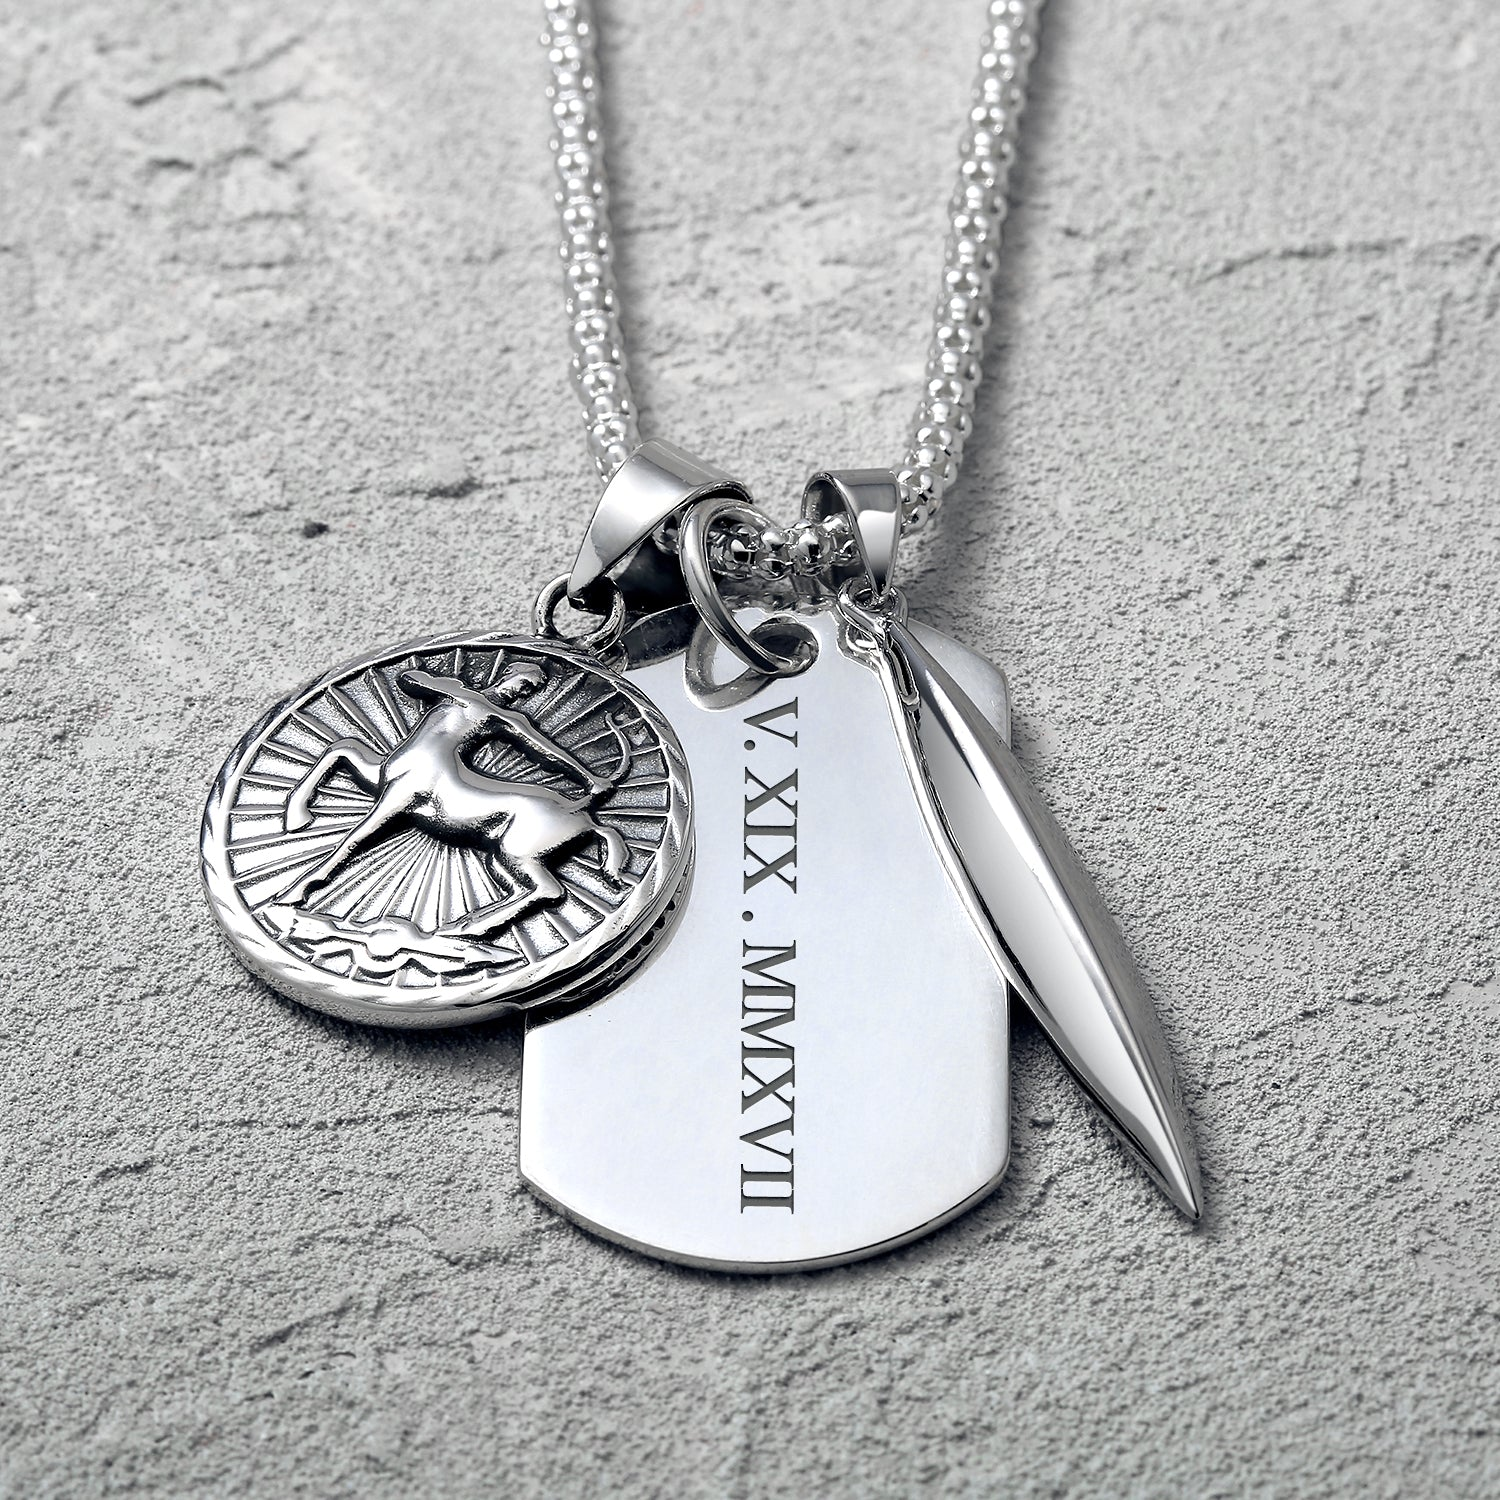 Gifts For Him Engravable Dog Tags